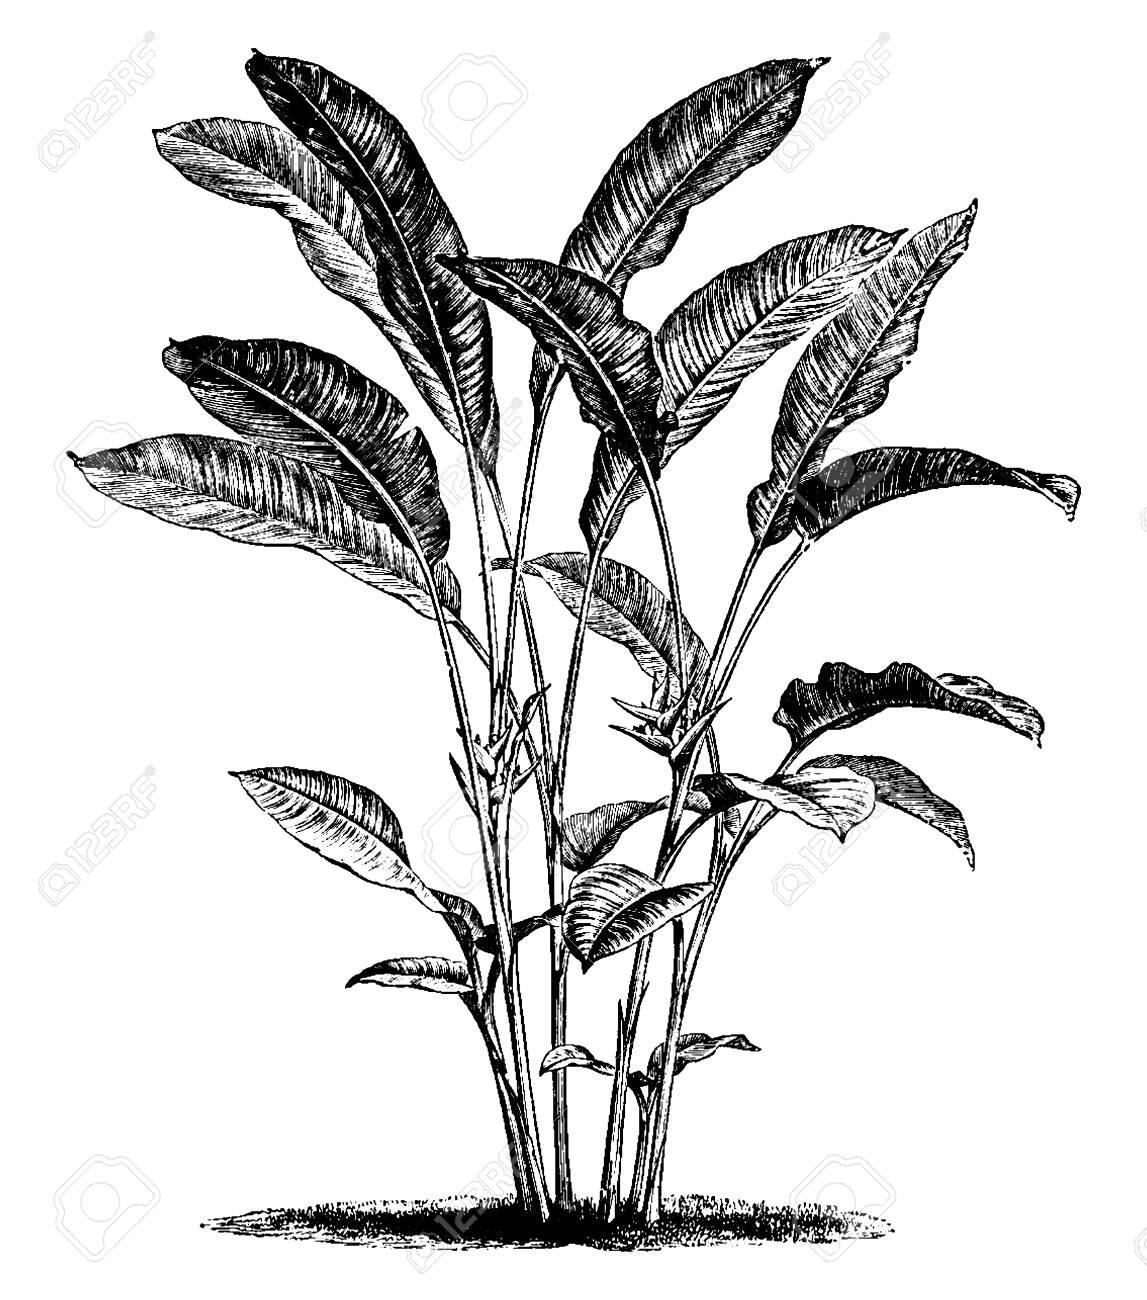 Heliconia bihai of the Heliconiaceae family is an erect herb typically growing taller than 1.5 m. the flower are red and orange, vintage line drawing or engraving illustration. - 133247273